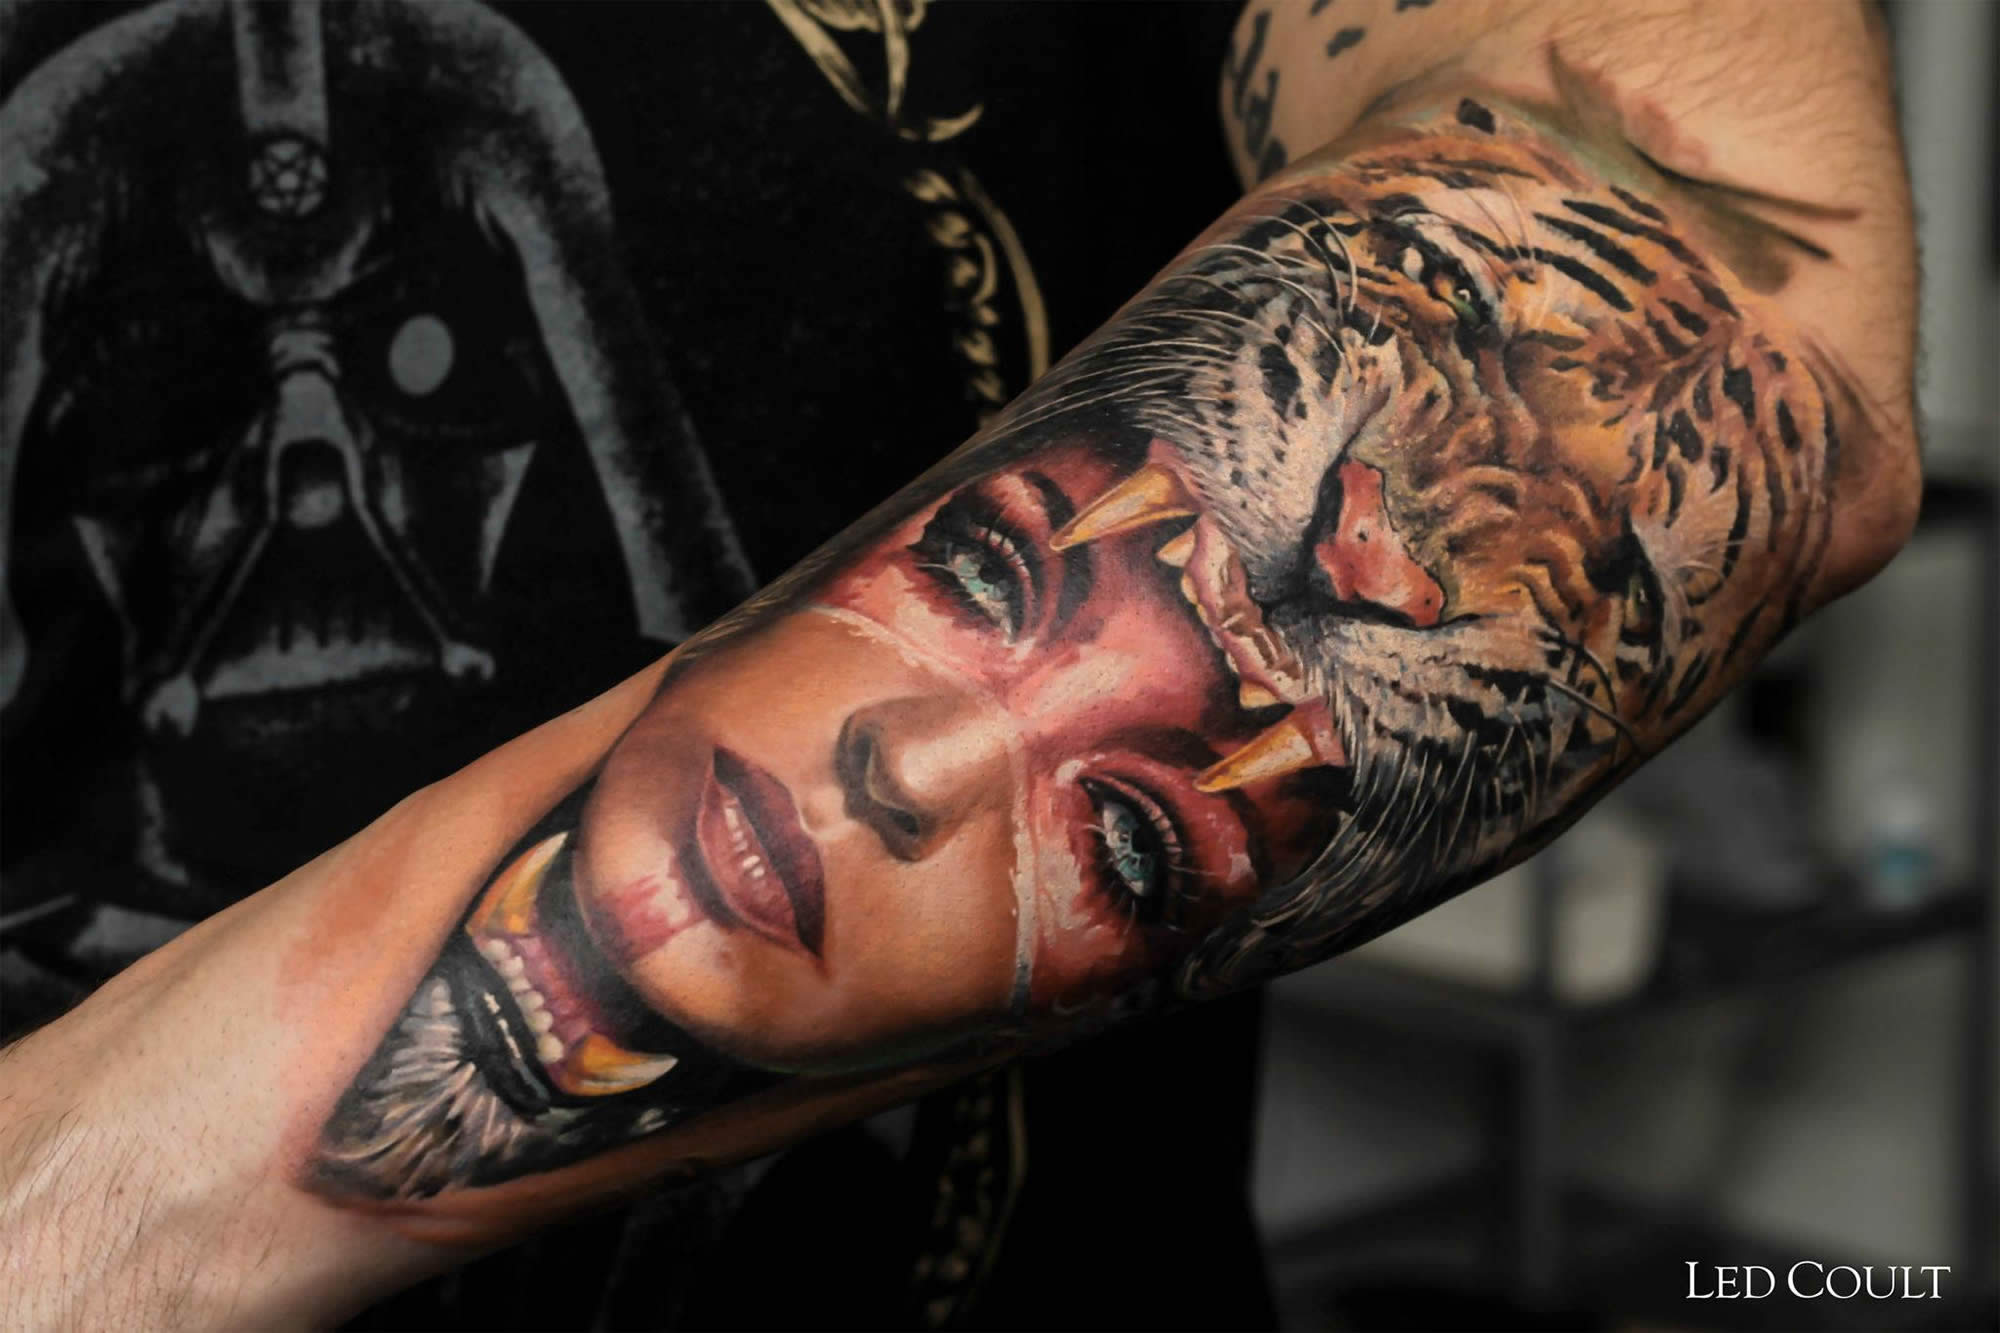 Tattoos by Brazilian Artist Led Coult